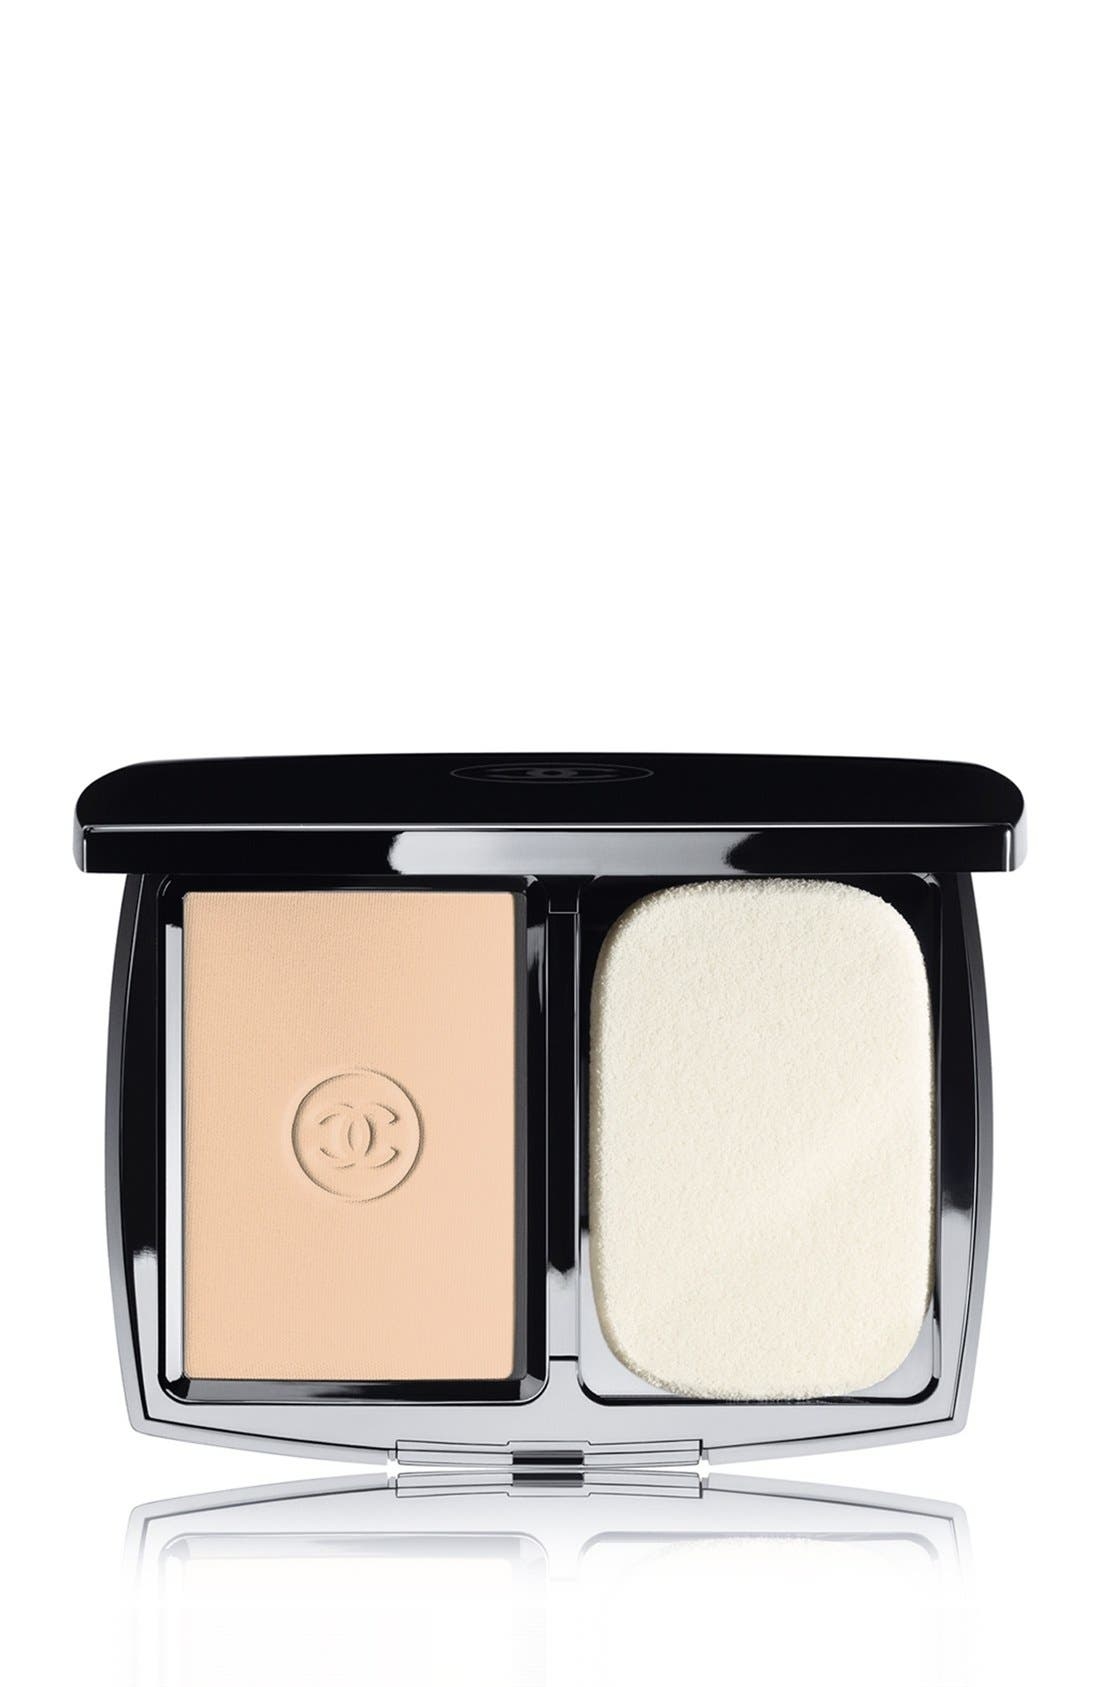 DOUBLE PERFECTION LUMIÈRE<br />Long-Wear Flawless Sunscreen Powder Makeup Broad Spectrum SPF 15,                             Main thumbnail 3, color,